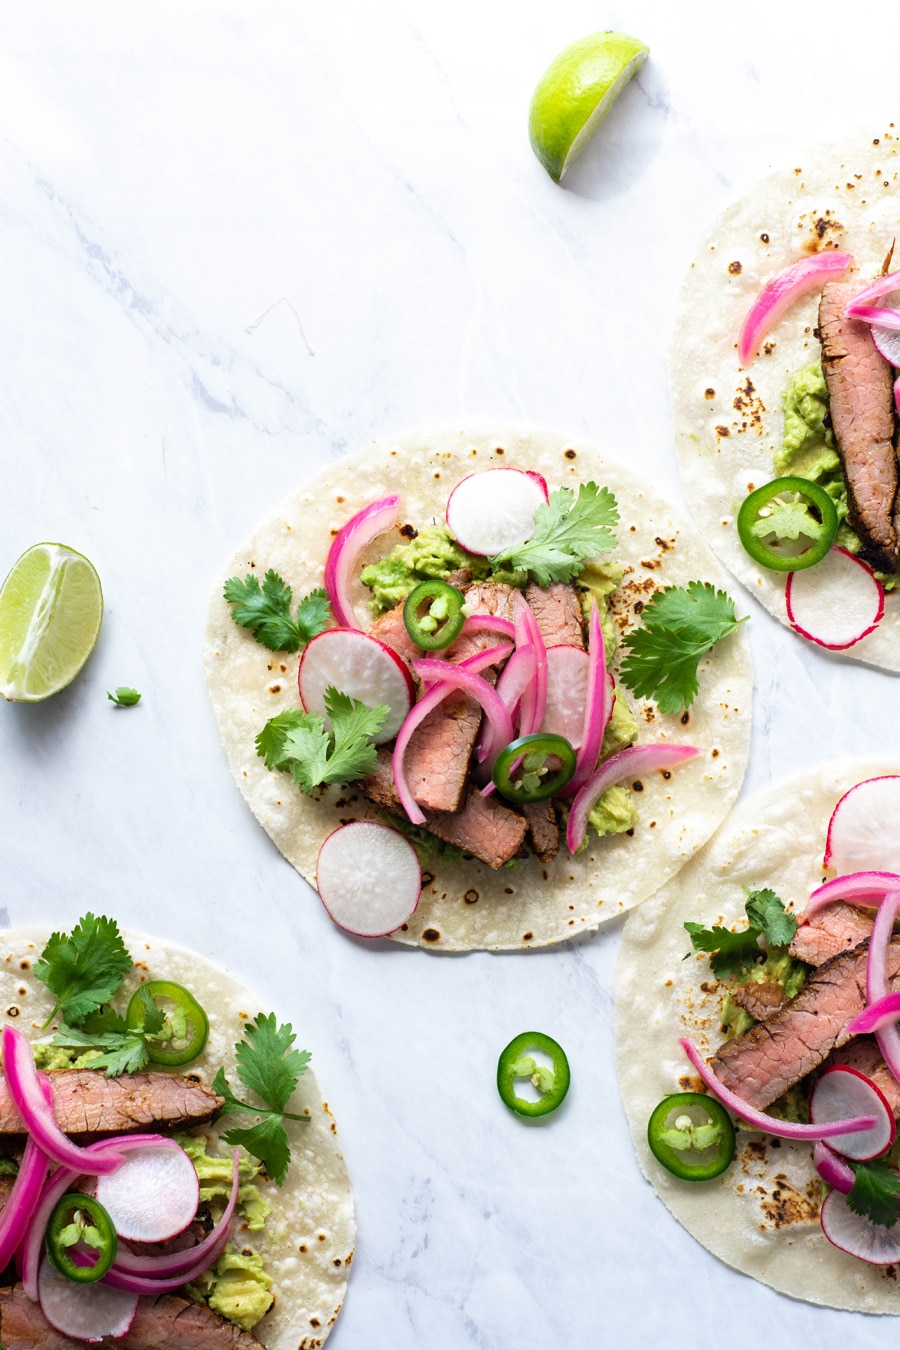 Multiple steak tacos on a white background with cilantro, thinly sliced jalapeno, pickled red onions